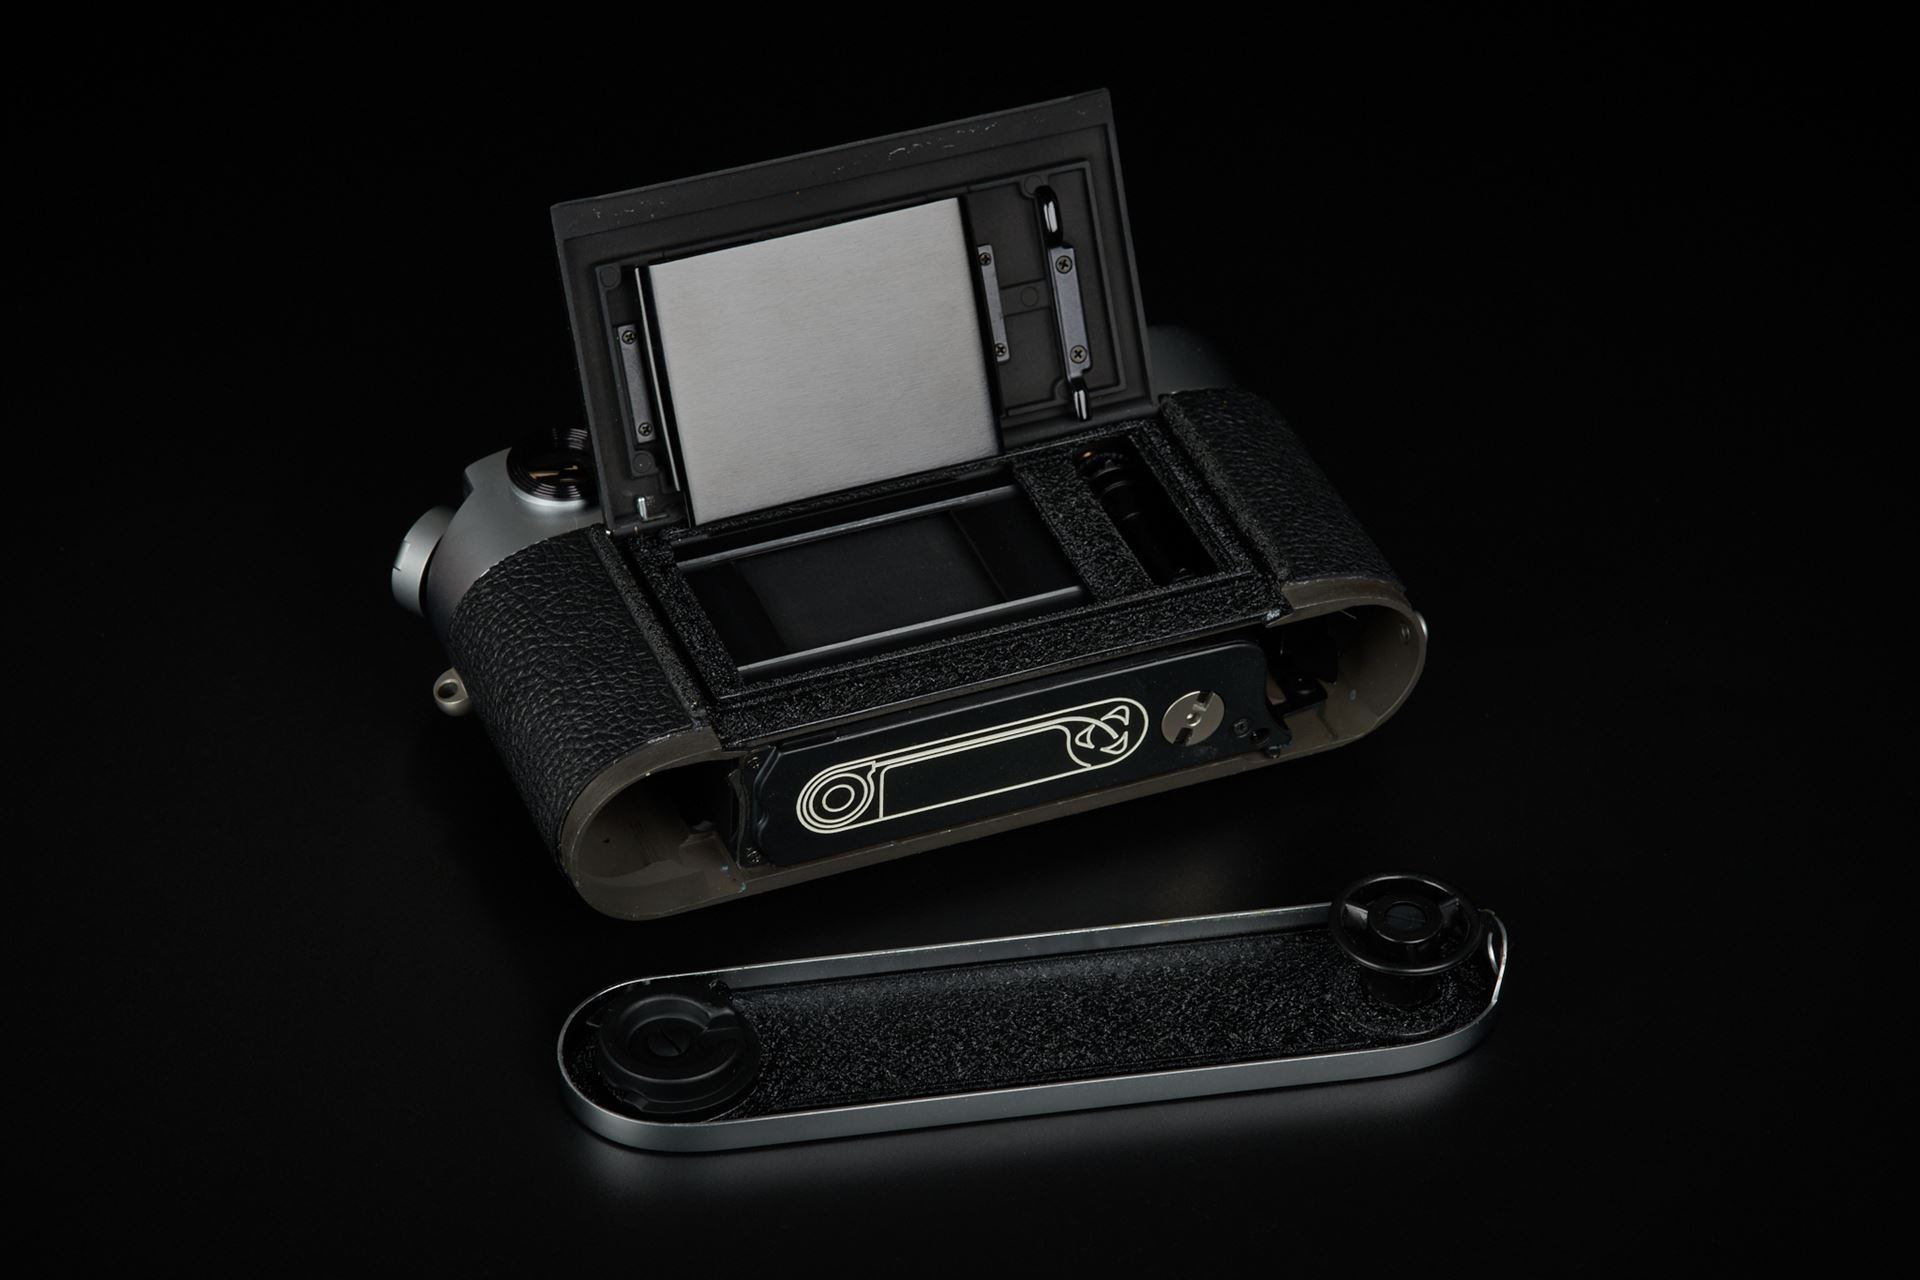 Picture of leica m4-p silver 1913-1983 set